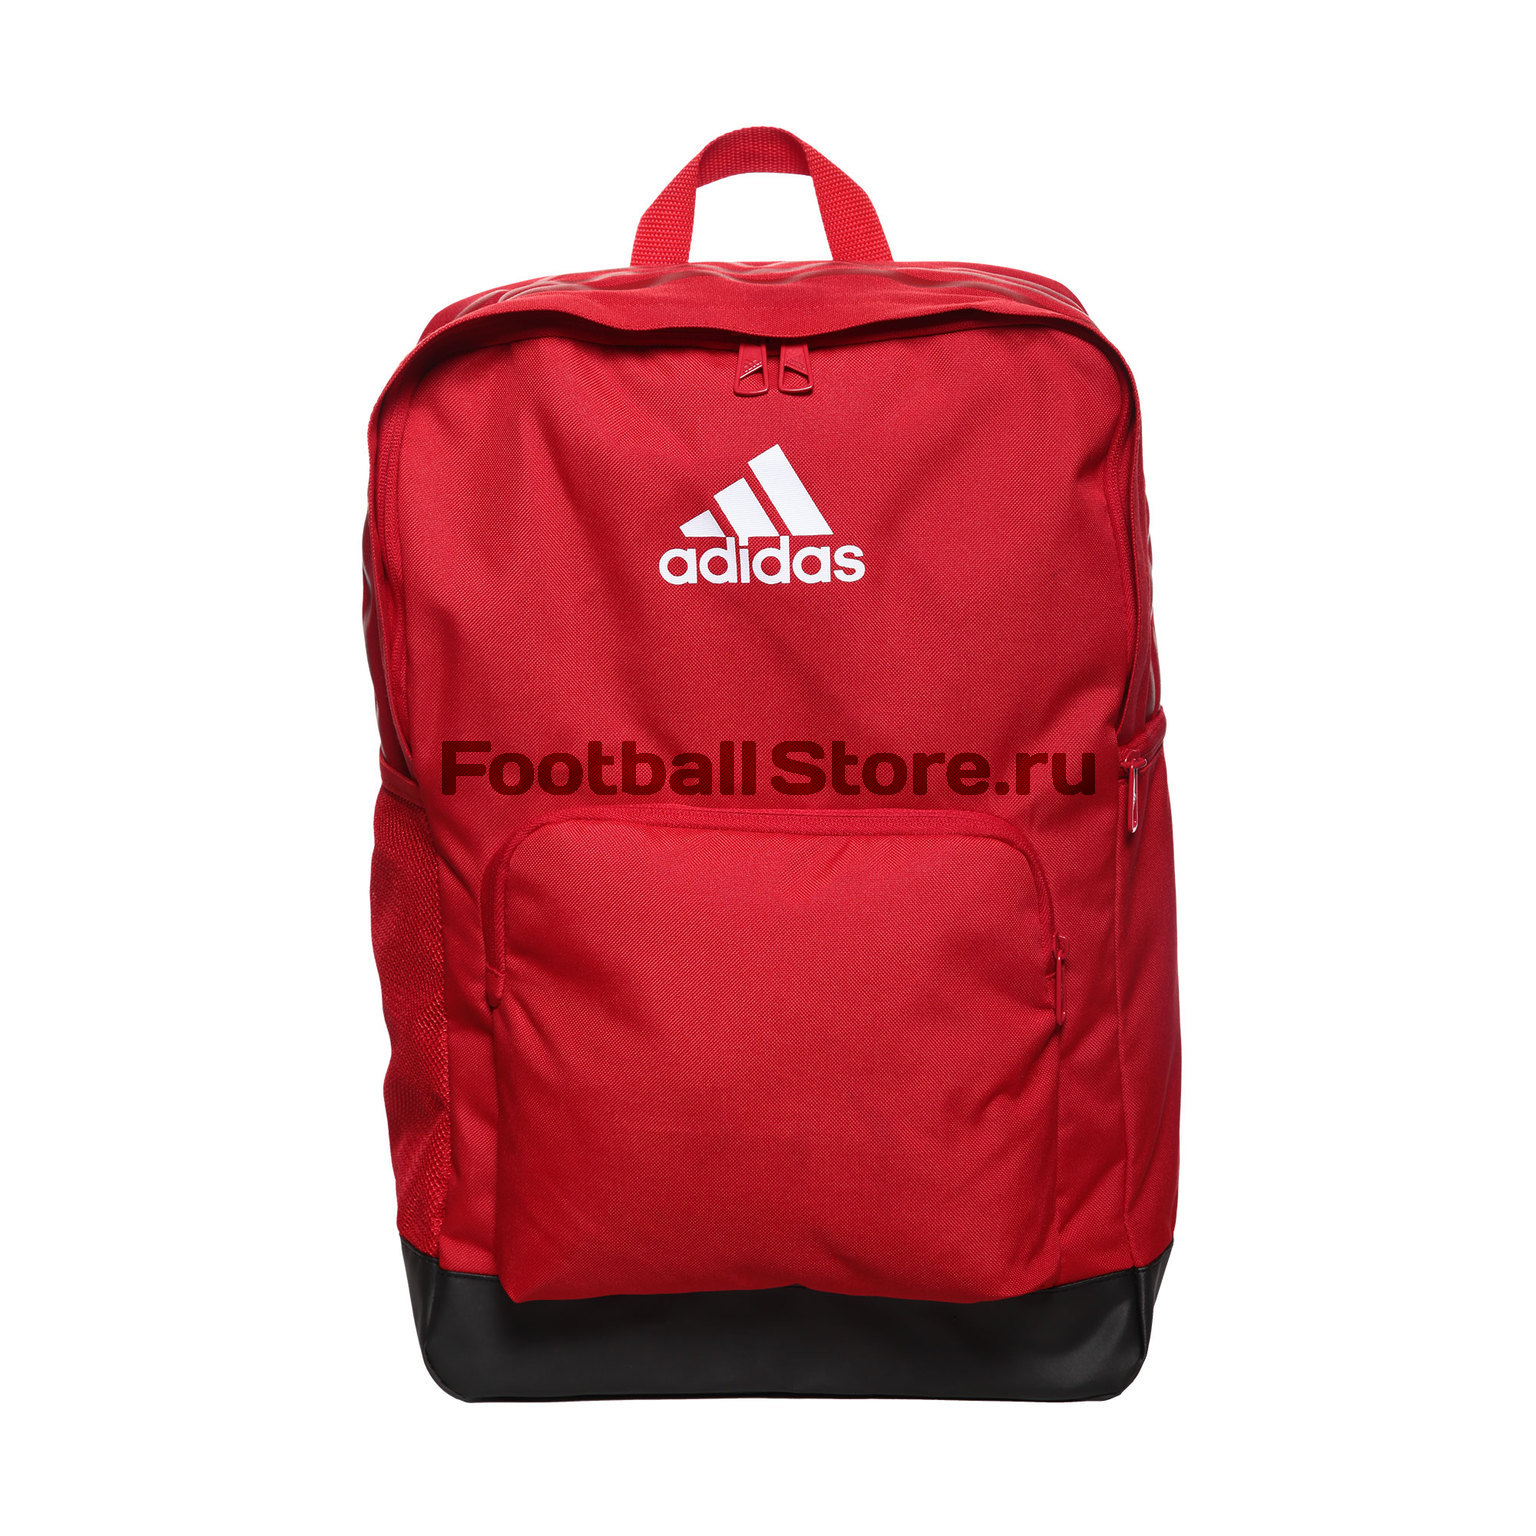 Рюкзак Adidas Tiro BP BS4761 рюкзак adidas russia training bp cf4978